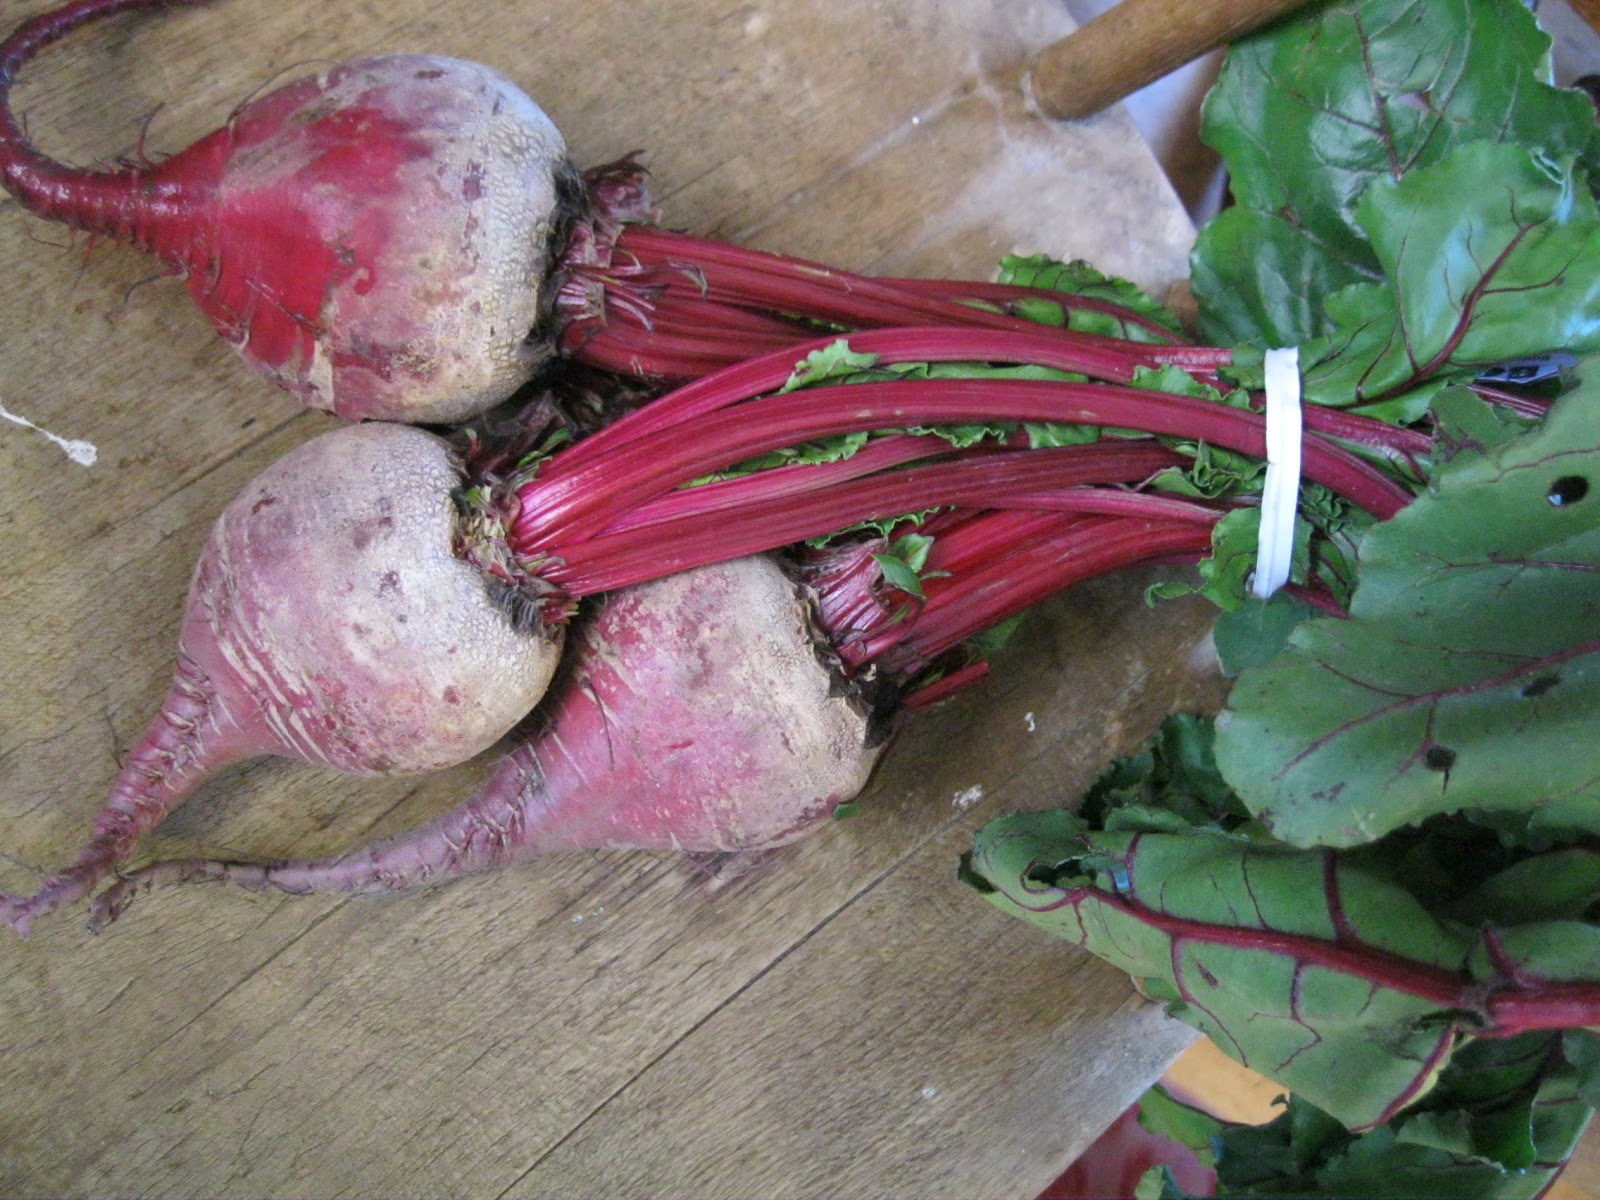 Beets for Food Coloring - For Him and My Family